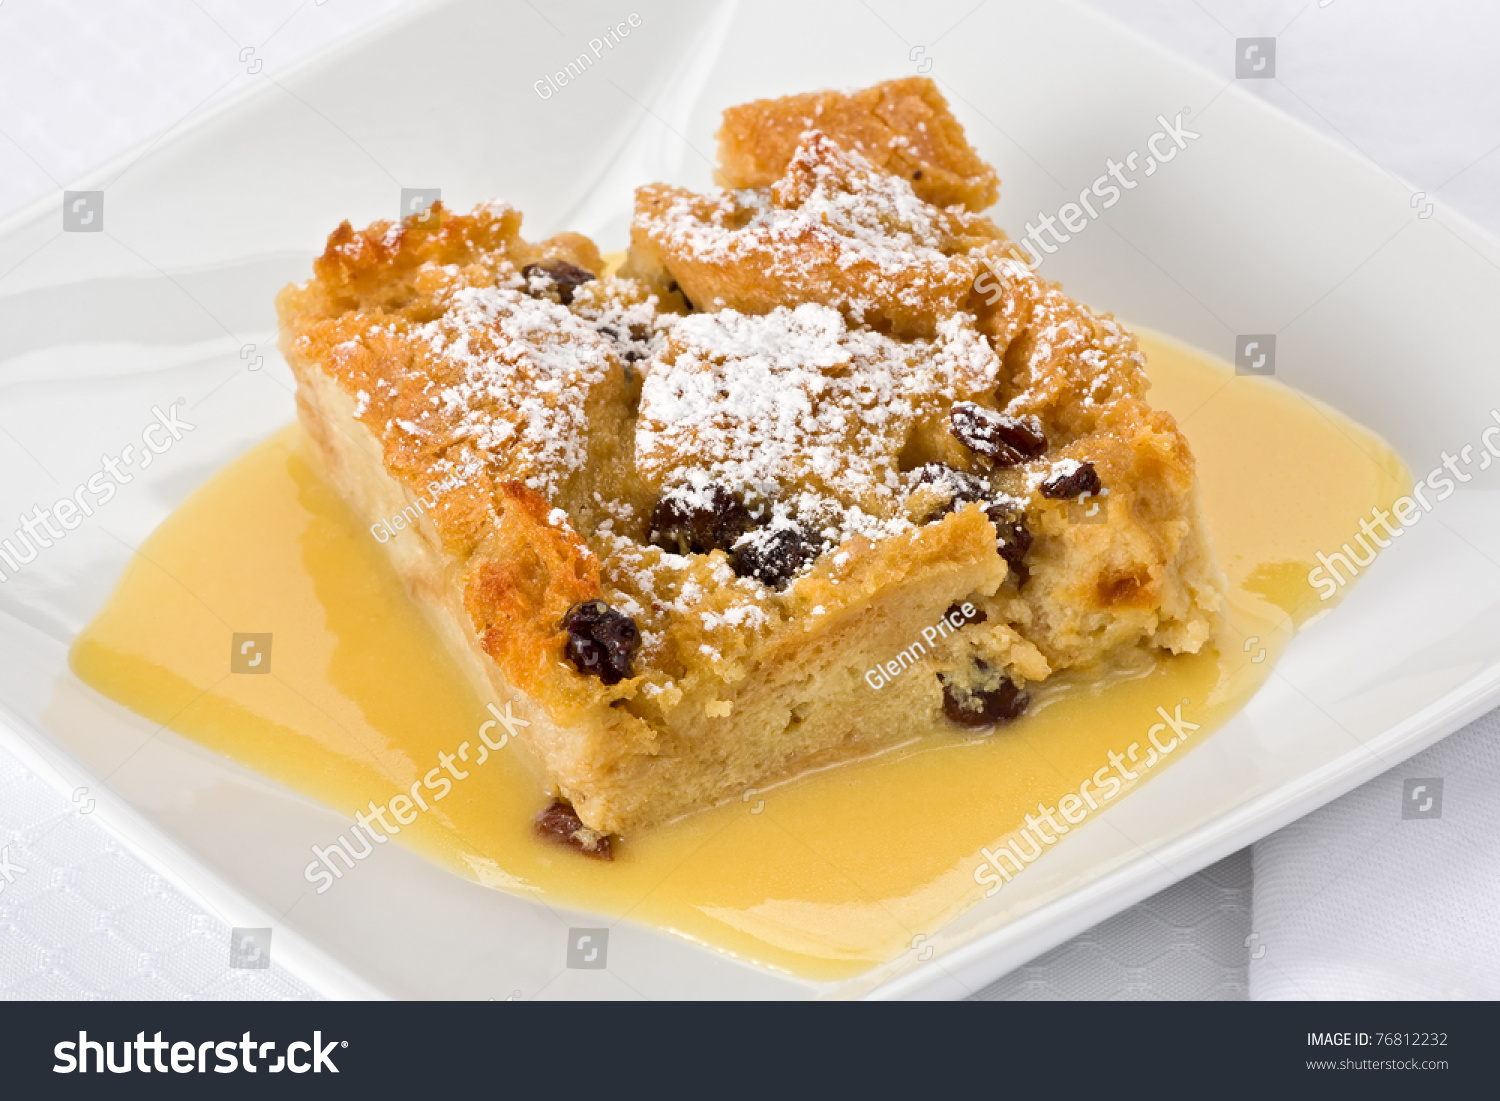 Bread Pudding With Bourbon Sauce On A Square Plate. Stock Photo ...